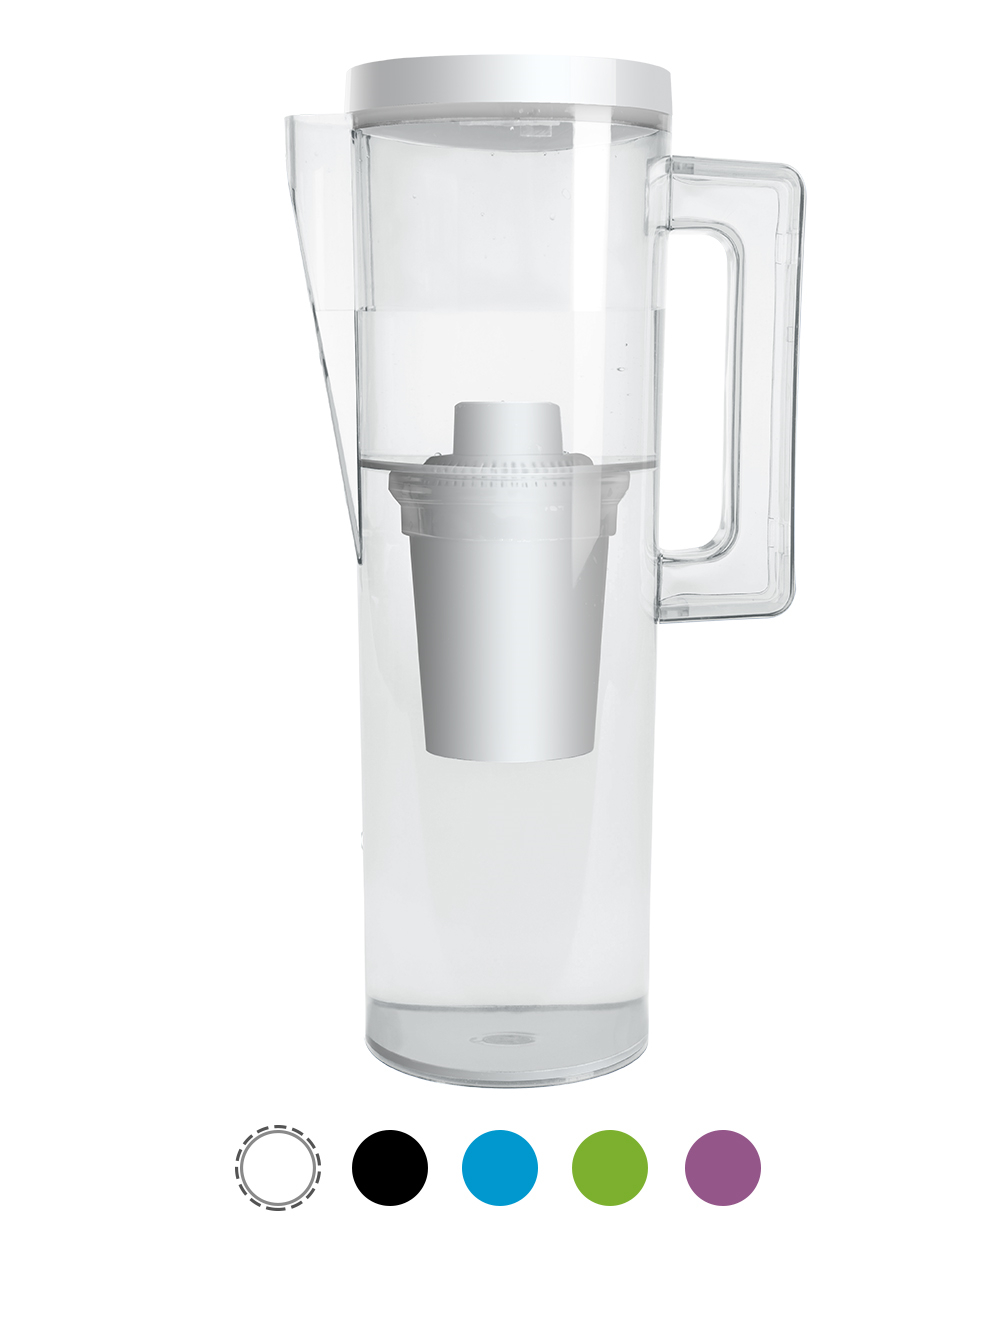 2.5l-water-filter-pitcher-for-refridgator-door-5_1501732530.jpg